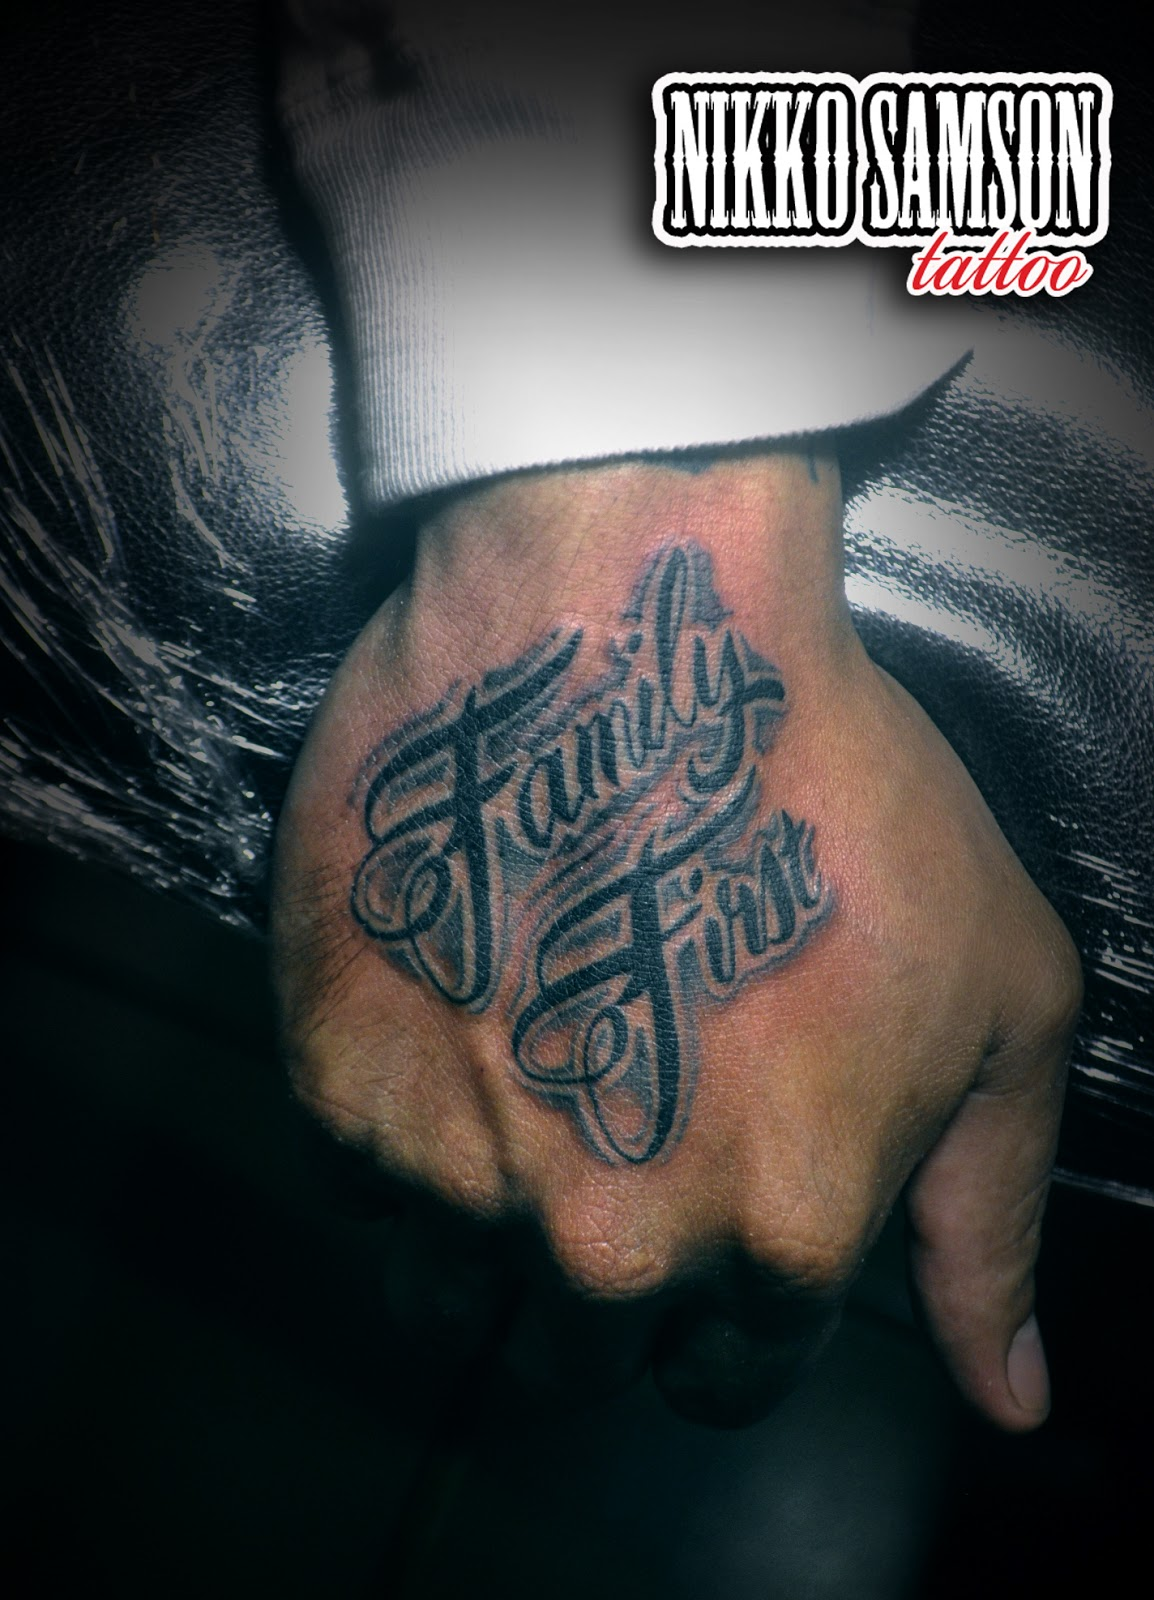 Family first hand tattoos images for Family first tattoo designs